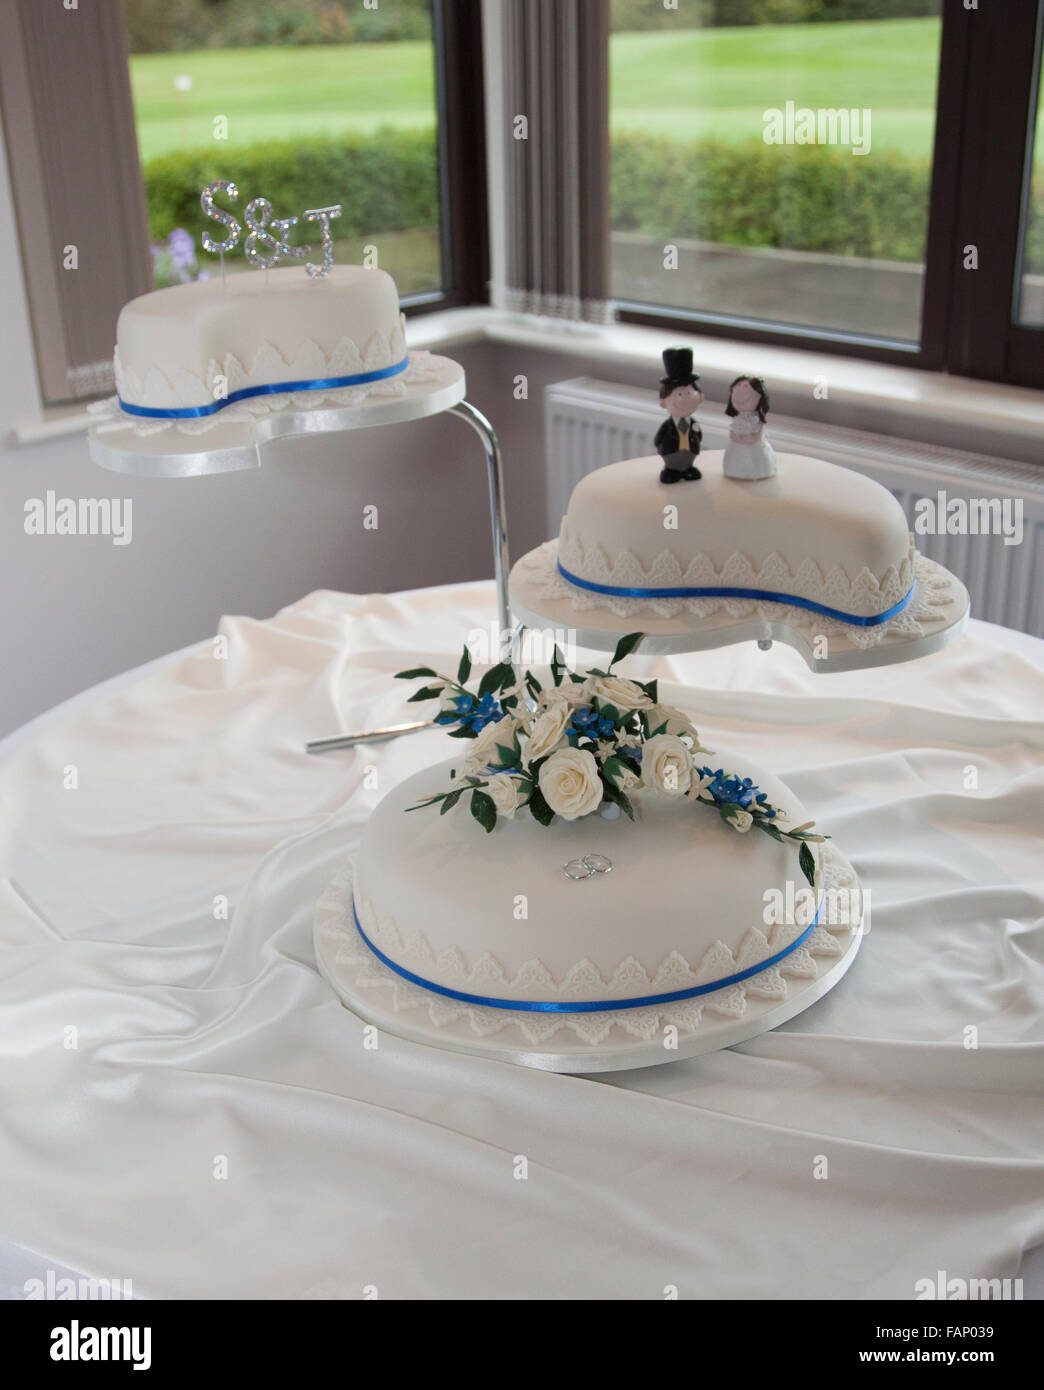 Wedding cake ready and waiting for the bride and groom to arrive - Stock Image